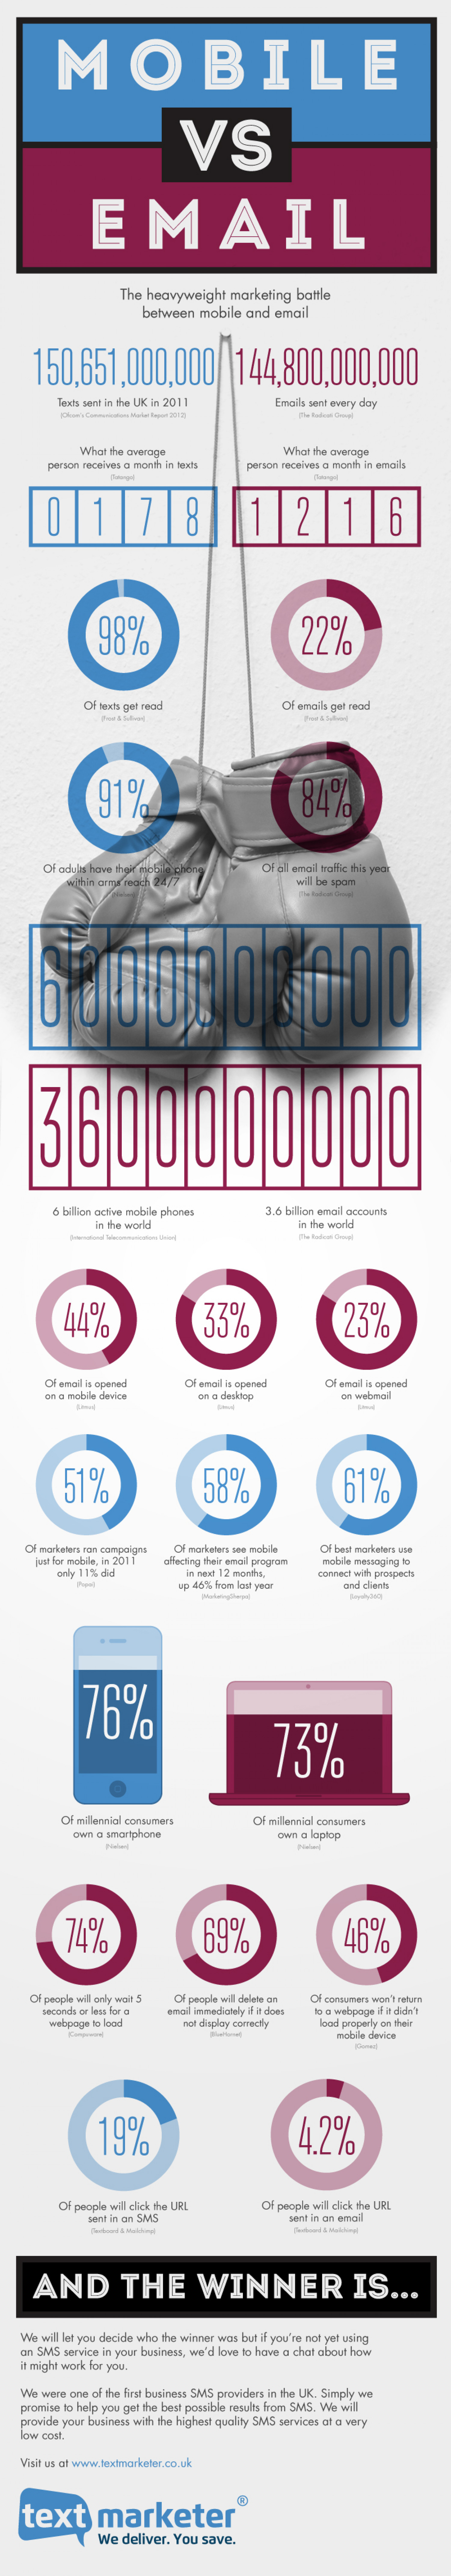 Mobile VS Email Statistics  Infographic